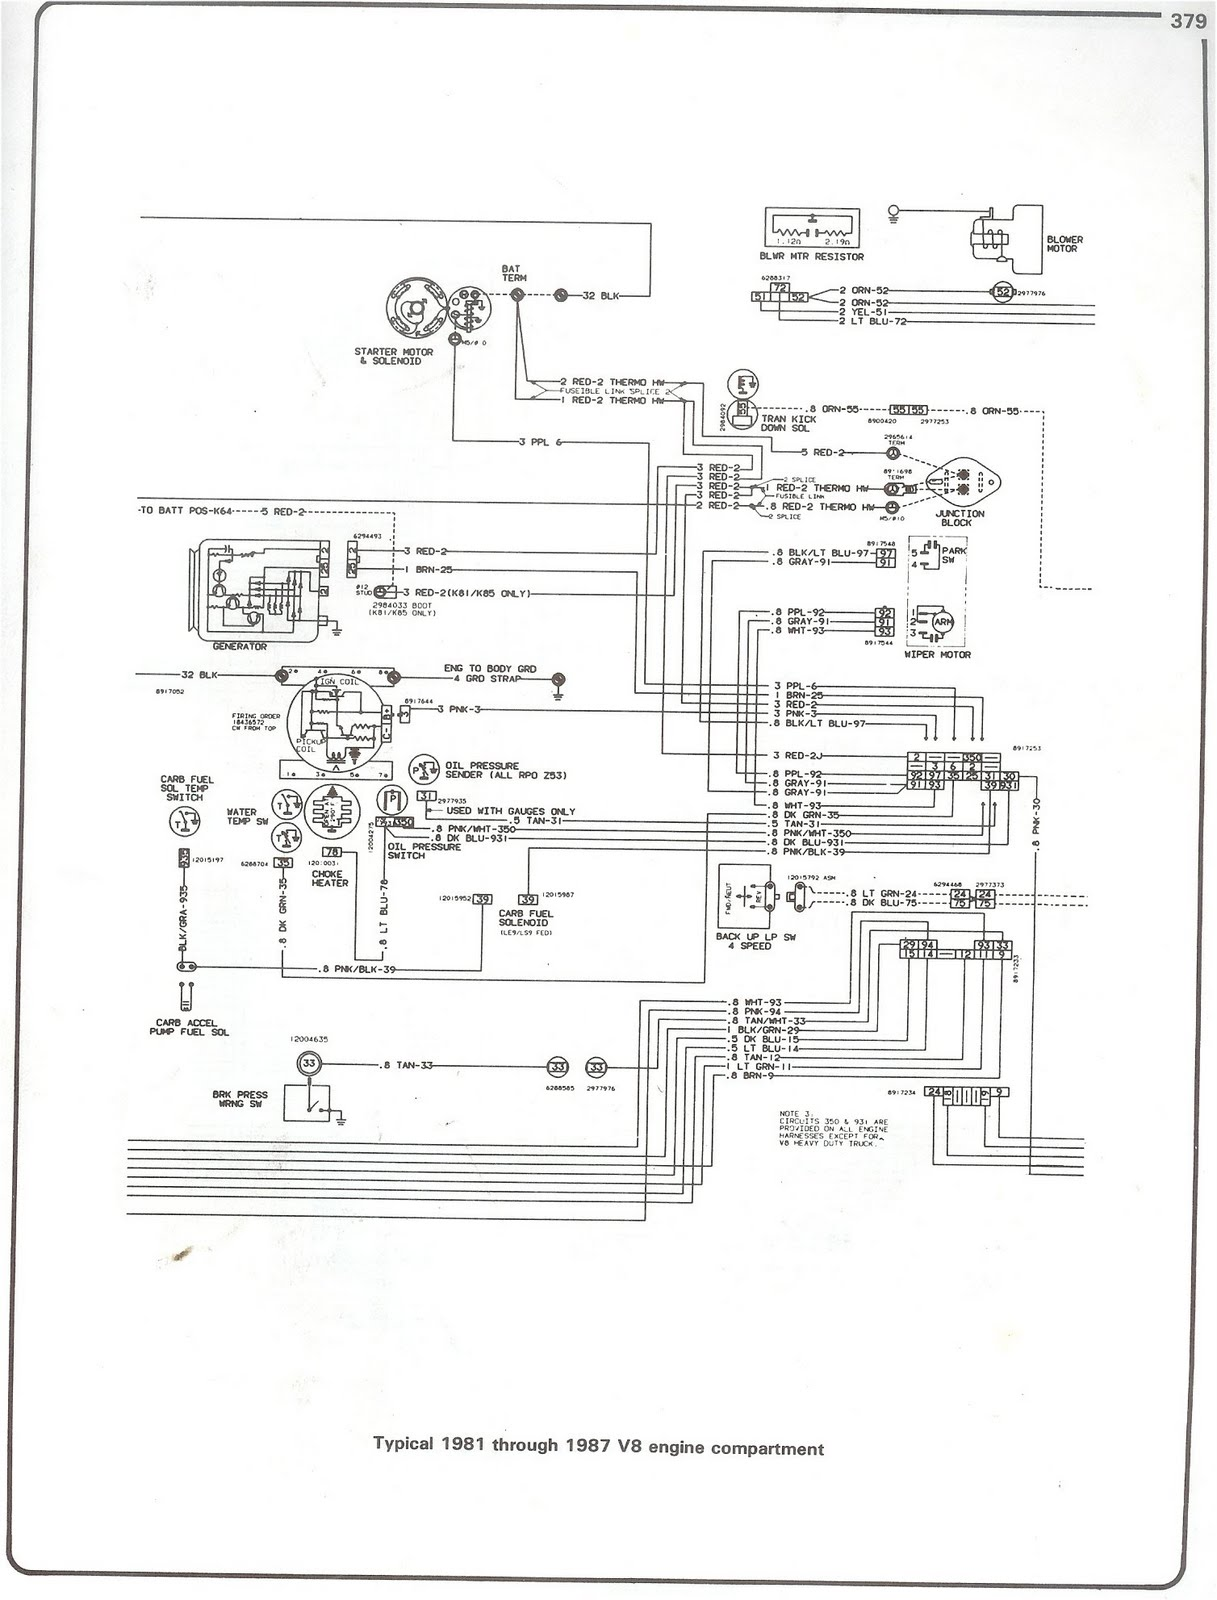 medium resolution of 1981 toyota pickup tail light wiring diagram trusted wiring diagram 1979 toyota pickup wiring diagram 1991